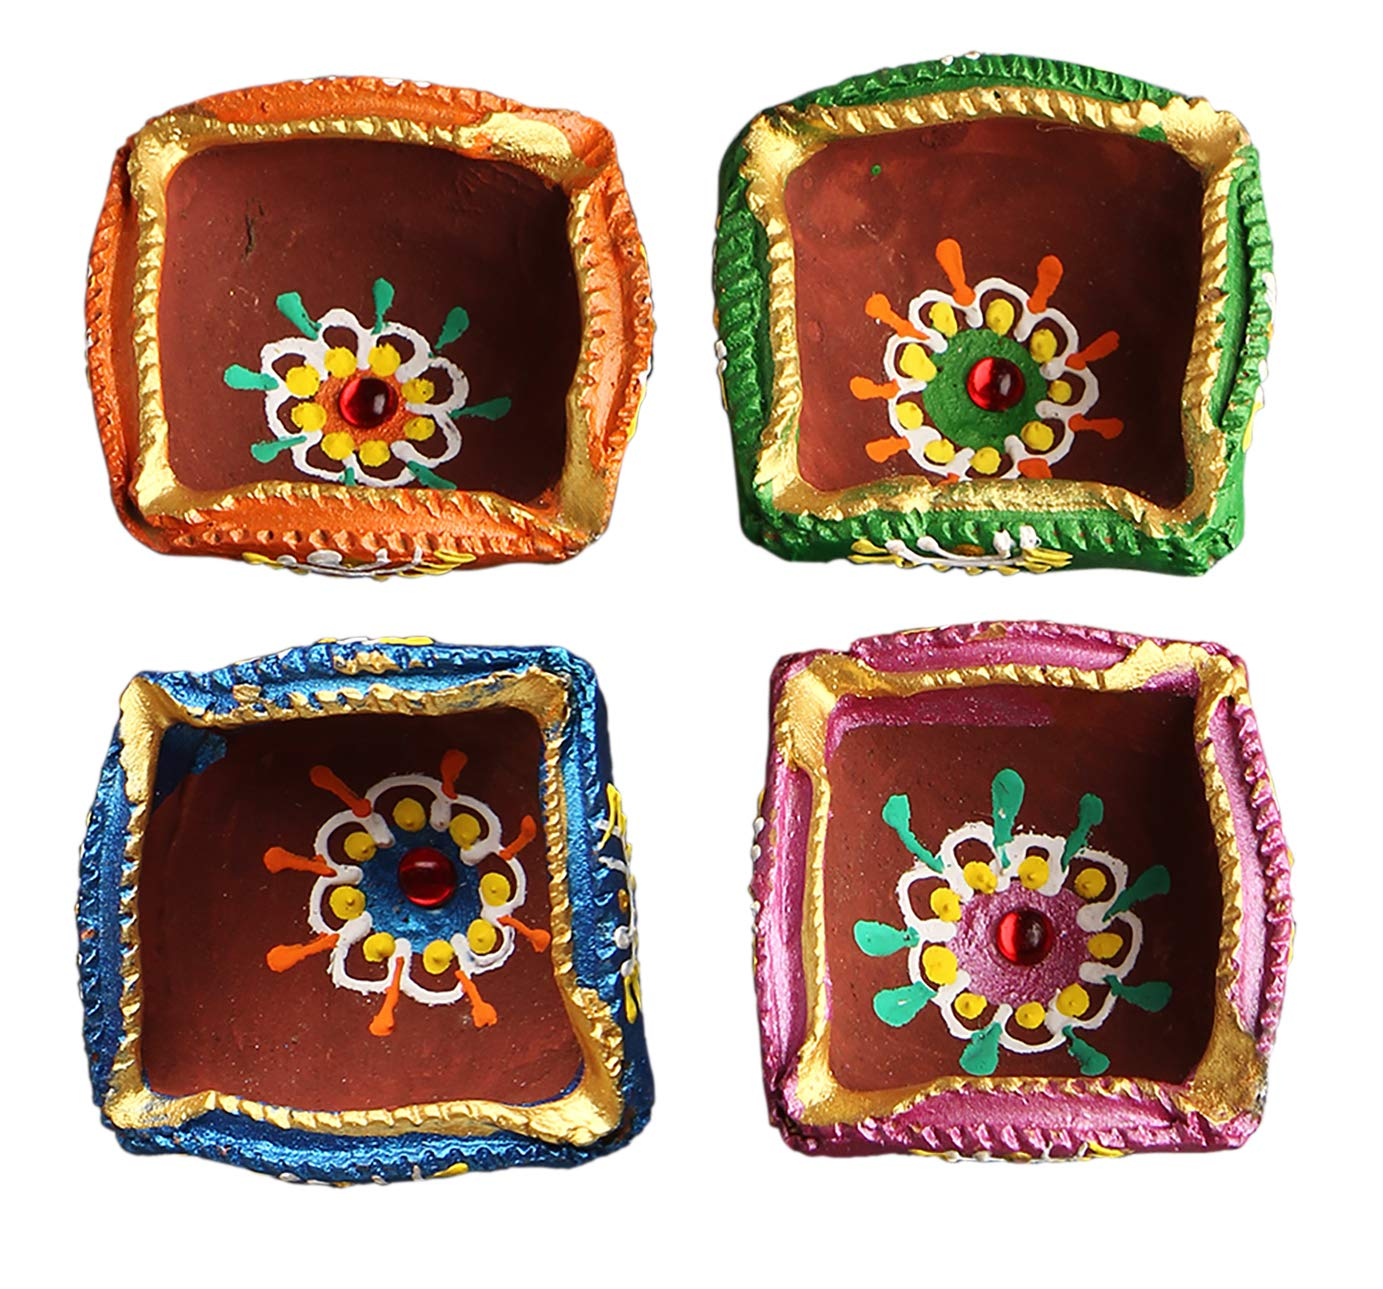 Set of 4 Handmade Decorative Diwali Clay Diyas Diwali Decoration Square Shaped Terracotta Clay Oil Lamps Store Indya